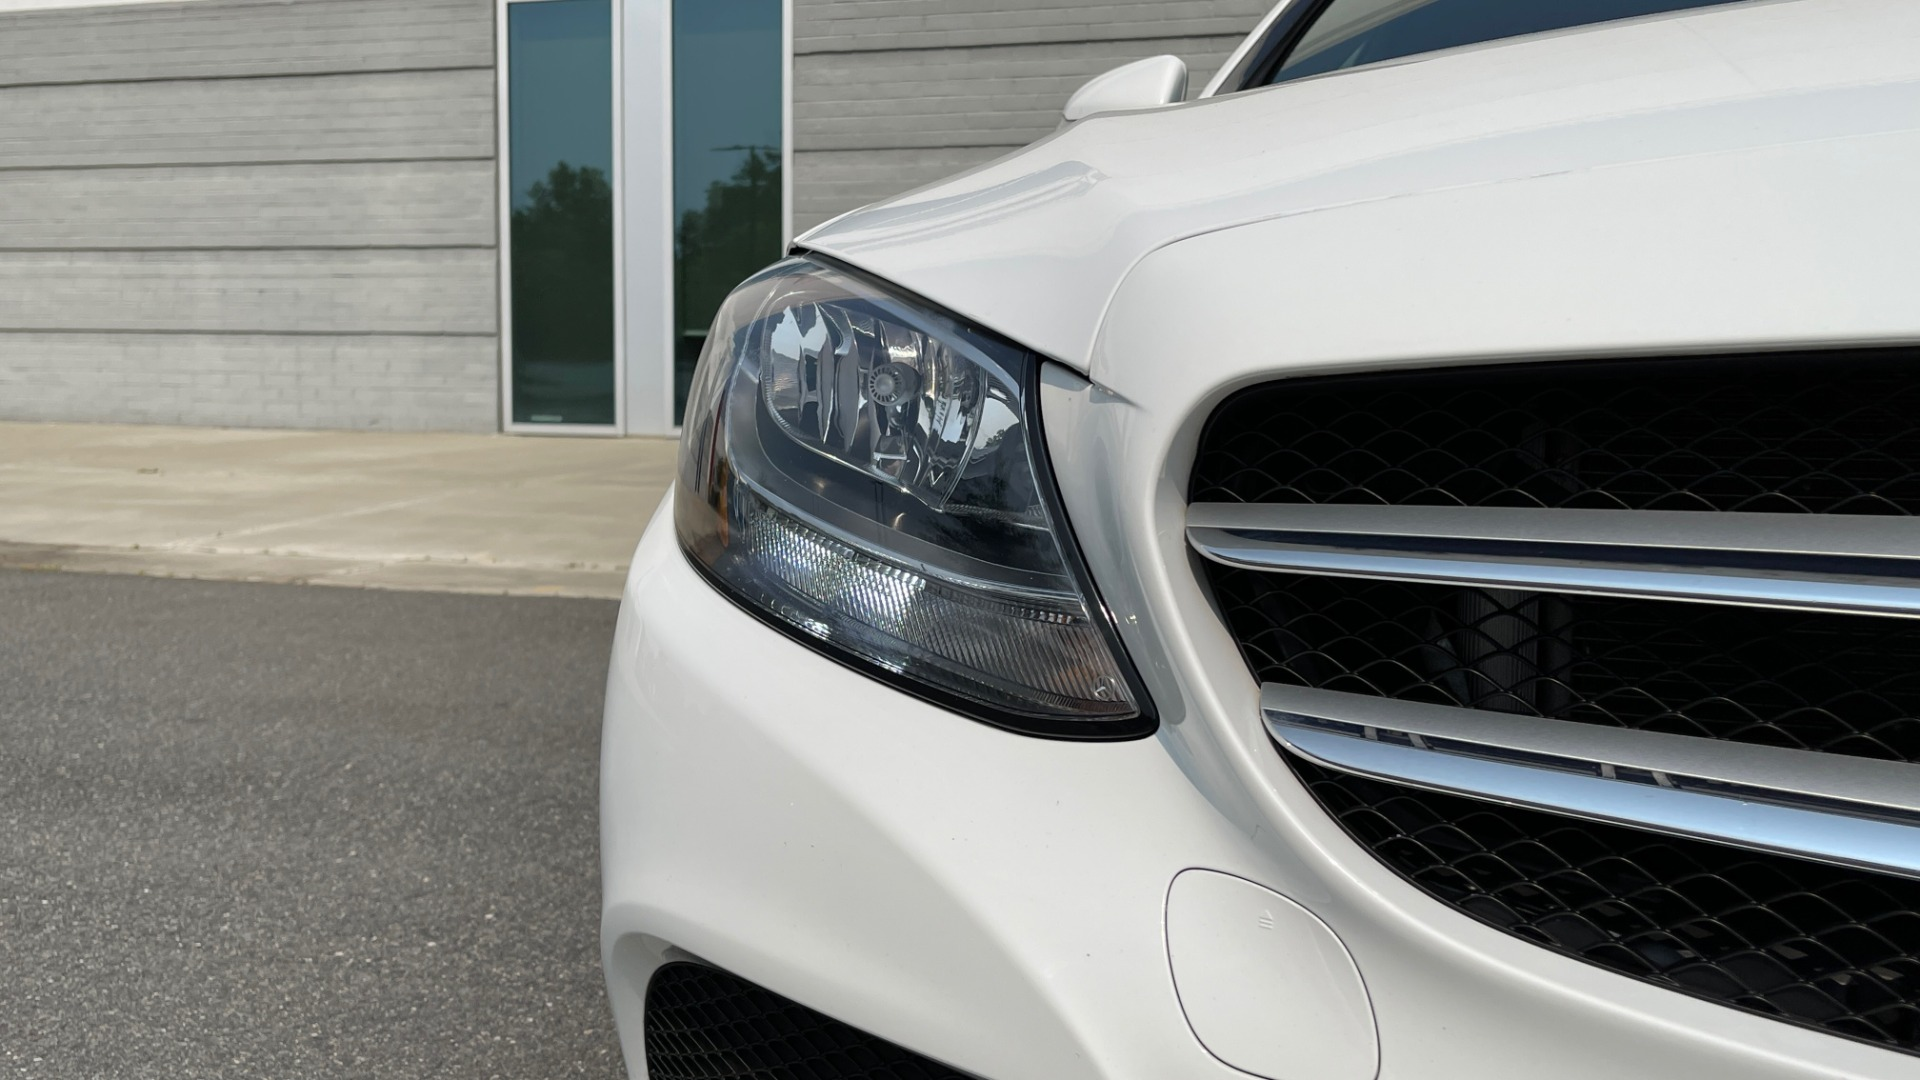 Used 2018 Mercedes-Benz C-Class C 300 4MATIC / PREMIUM / BURMESTER / HTD STS / SUNROOF / REARVIEW for sale $33,995 at Formula Imports in Charlotte NC 28227 12